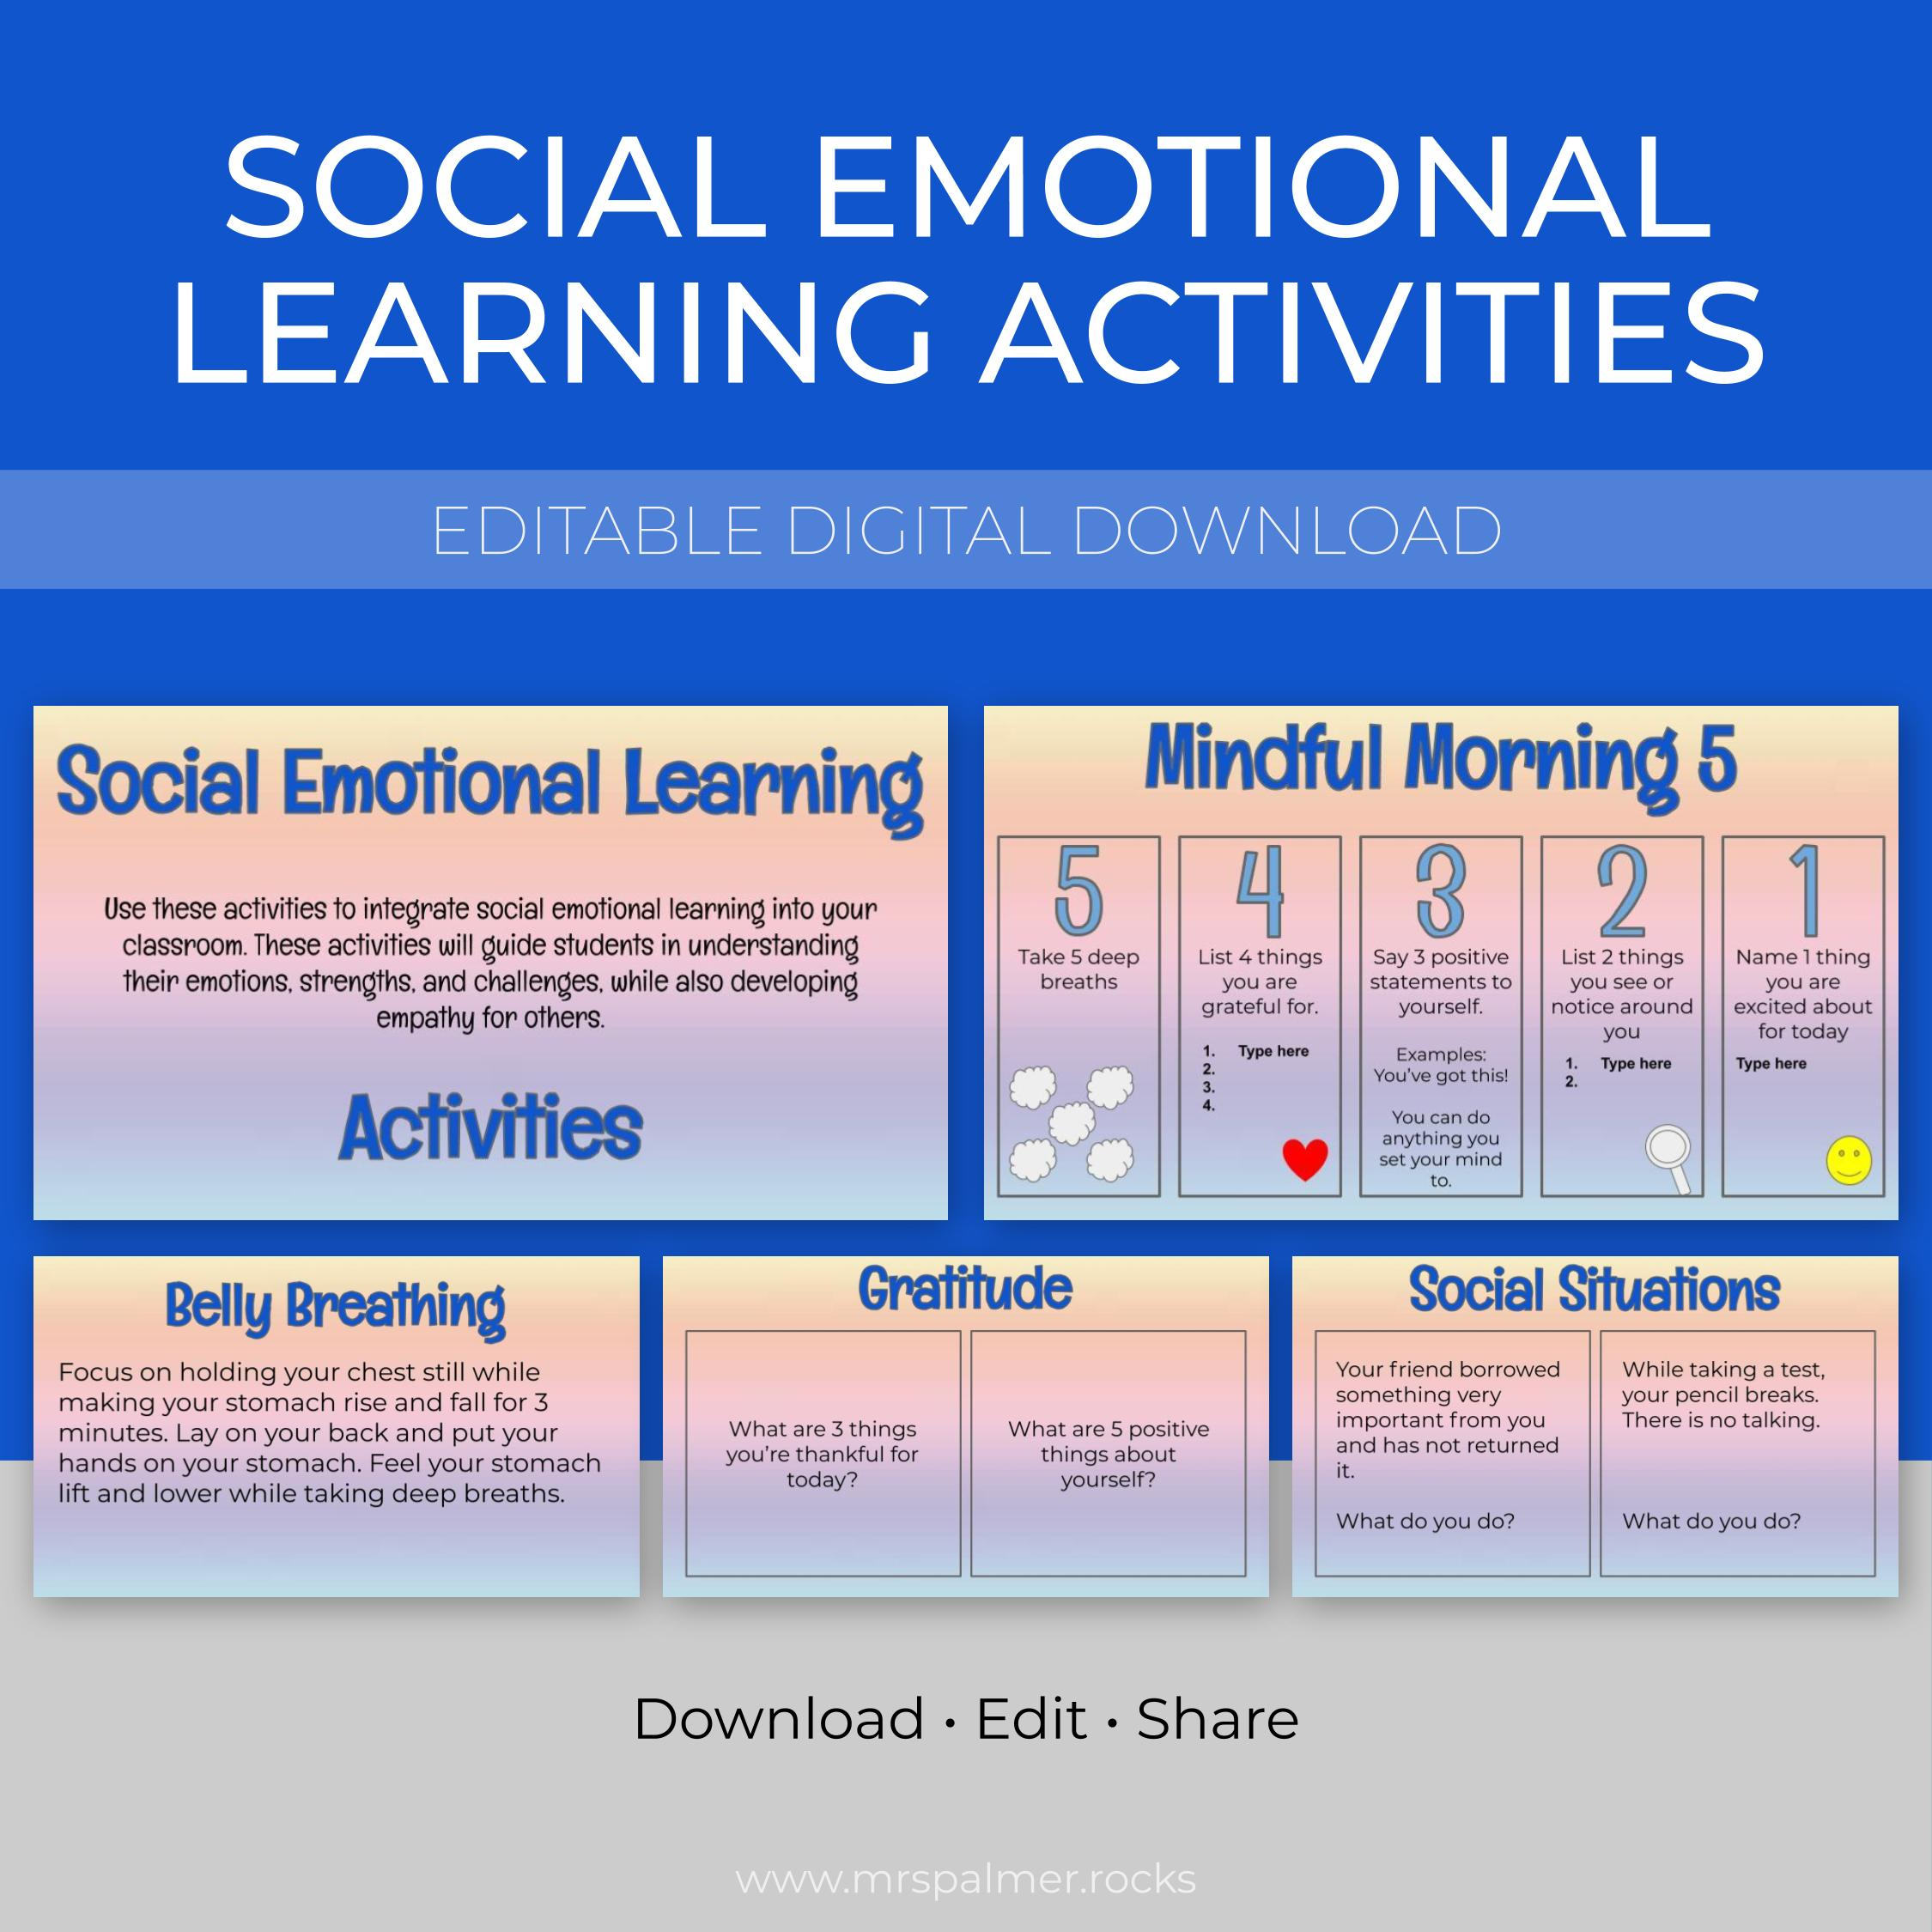 Social Emotional Learning Activities